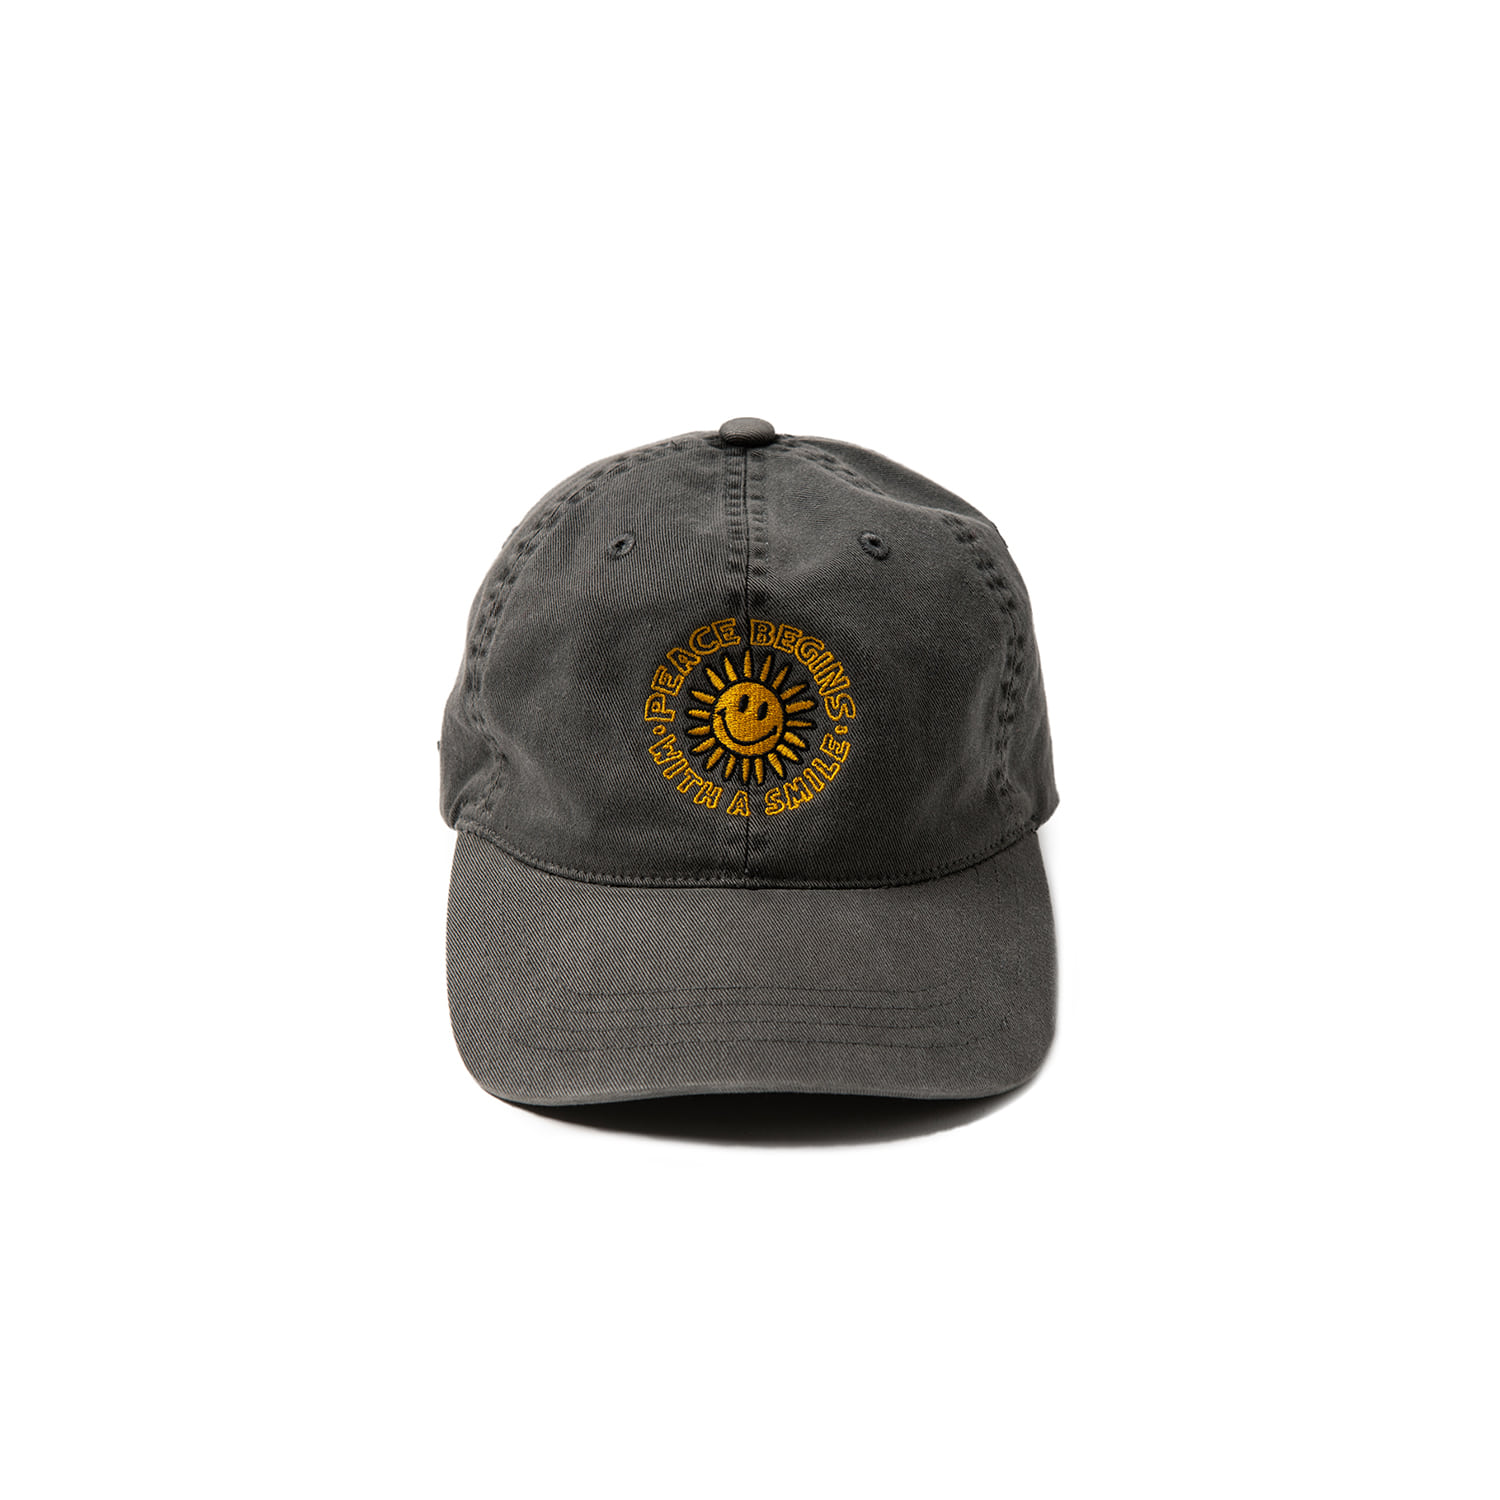 PEACE BEGIN SMILE WASHED CAP - PIGMENT BLACK